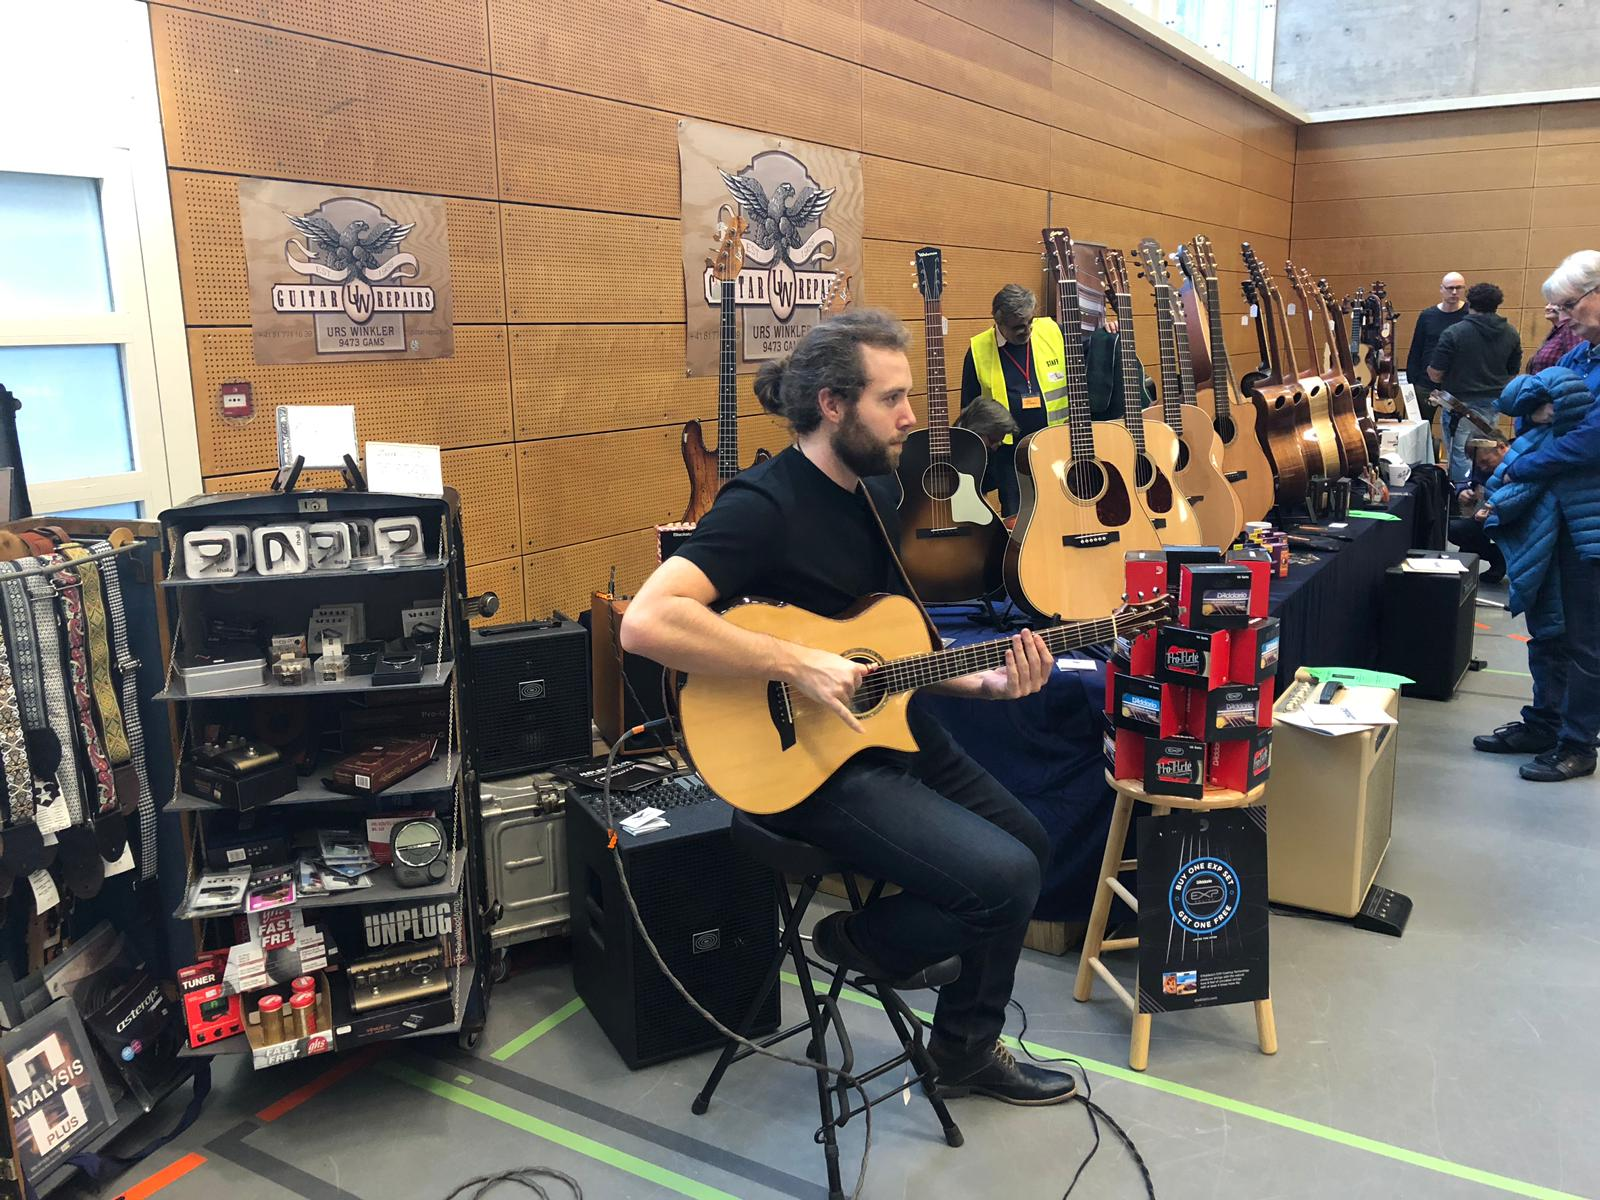 At 'Guitars & More' with 'Guitar-Repairs Urs Winkler